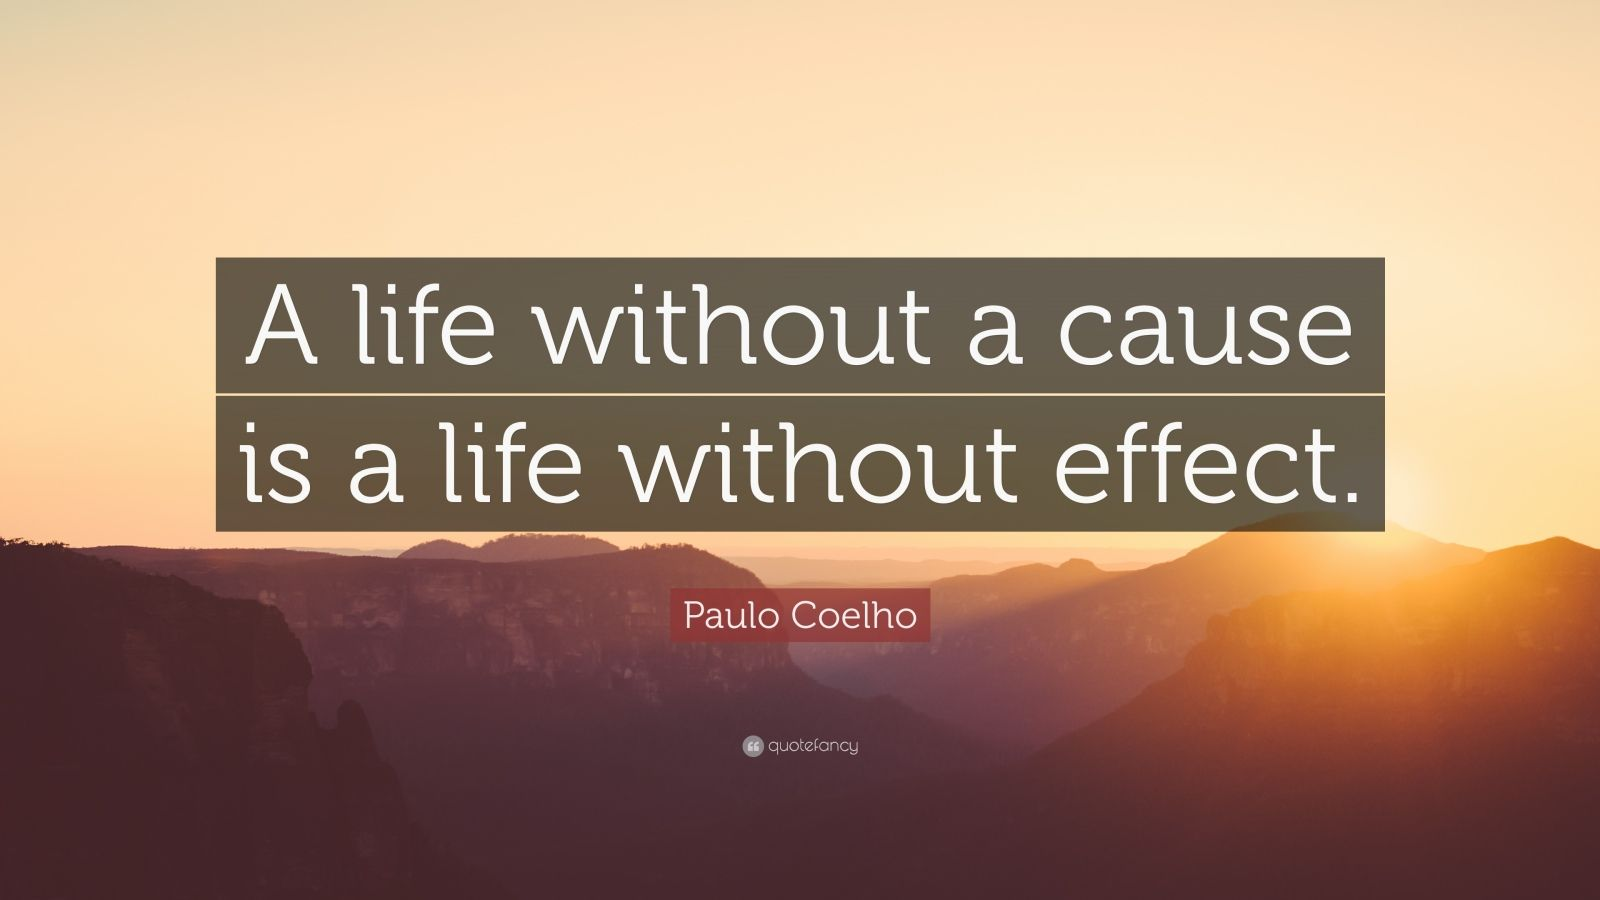 Motivational Wallpapers Without Quotes Paulo Coelho Quote A Life Without A Cause Is A Life